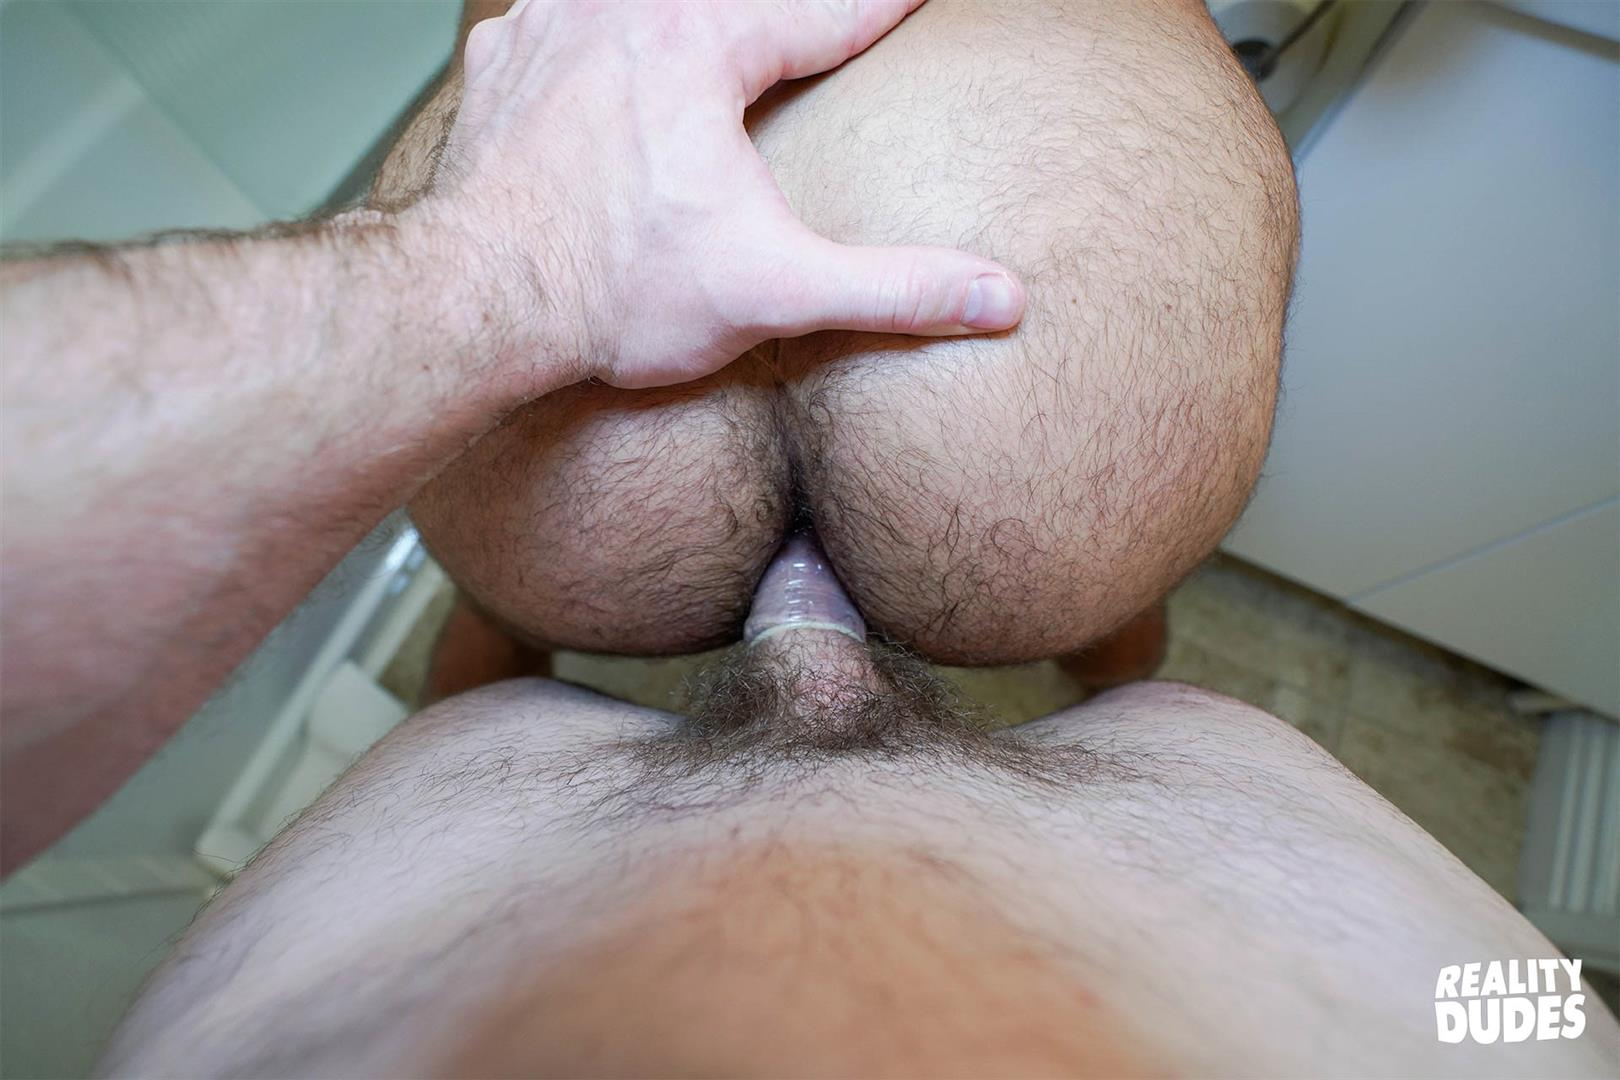 Reality-Dudes-Sharok-Straight-Guy-Gets-Fucked-In-Hairy-Ass-For-Cash-20 Paying A Straight Muscle Hunk To Let Me Fuck His Hairy Ass